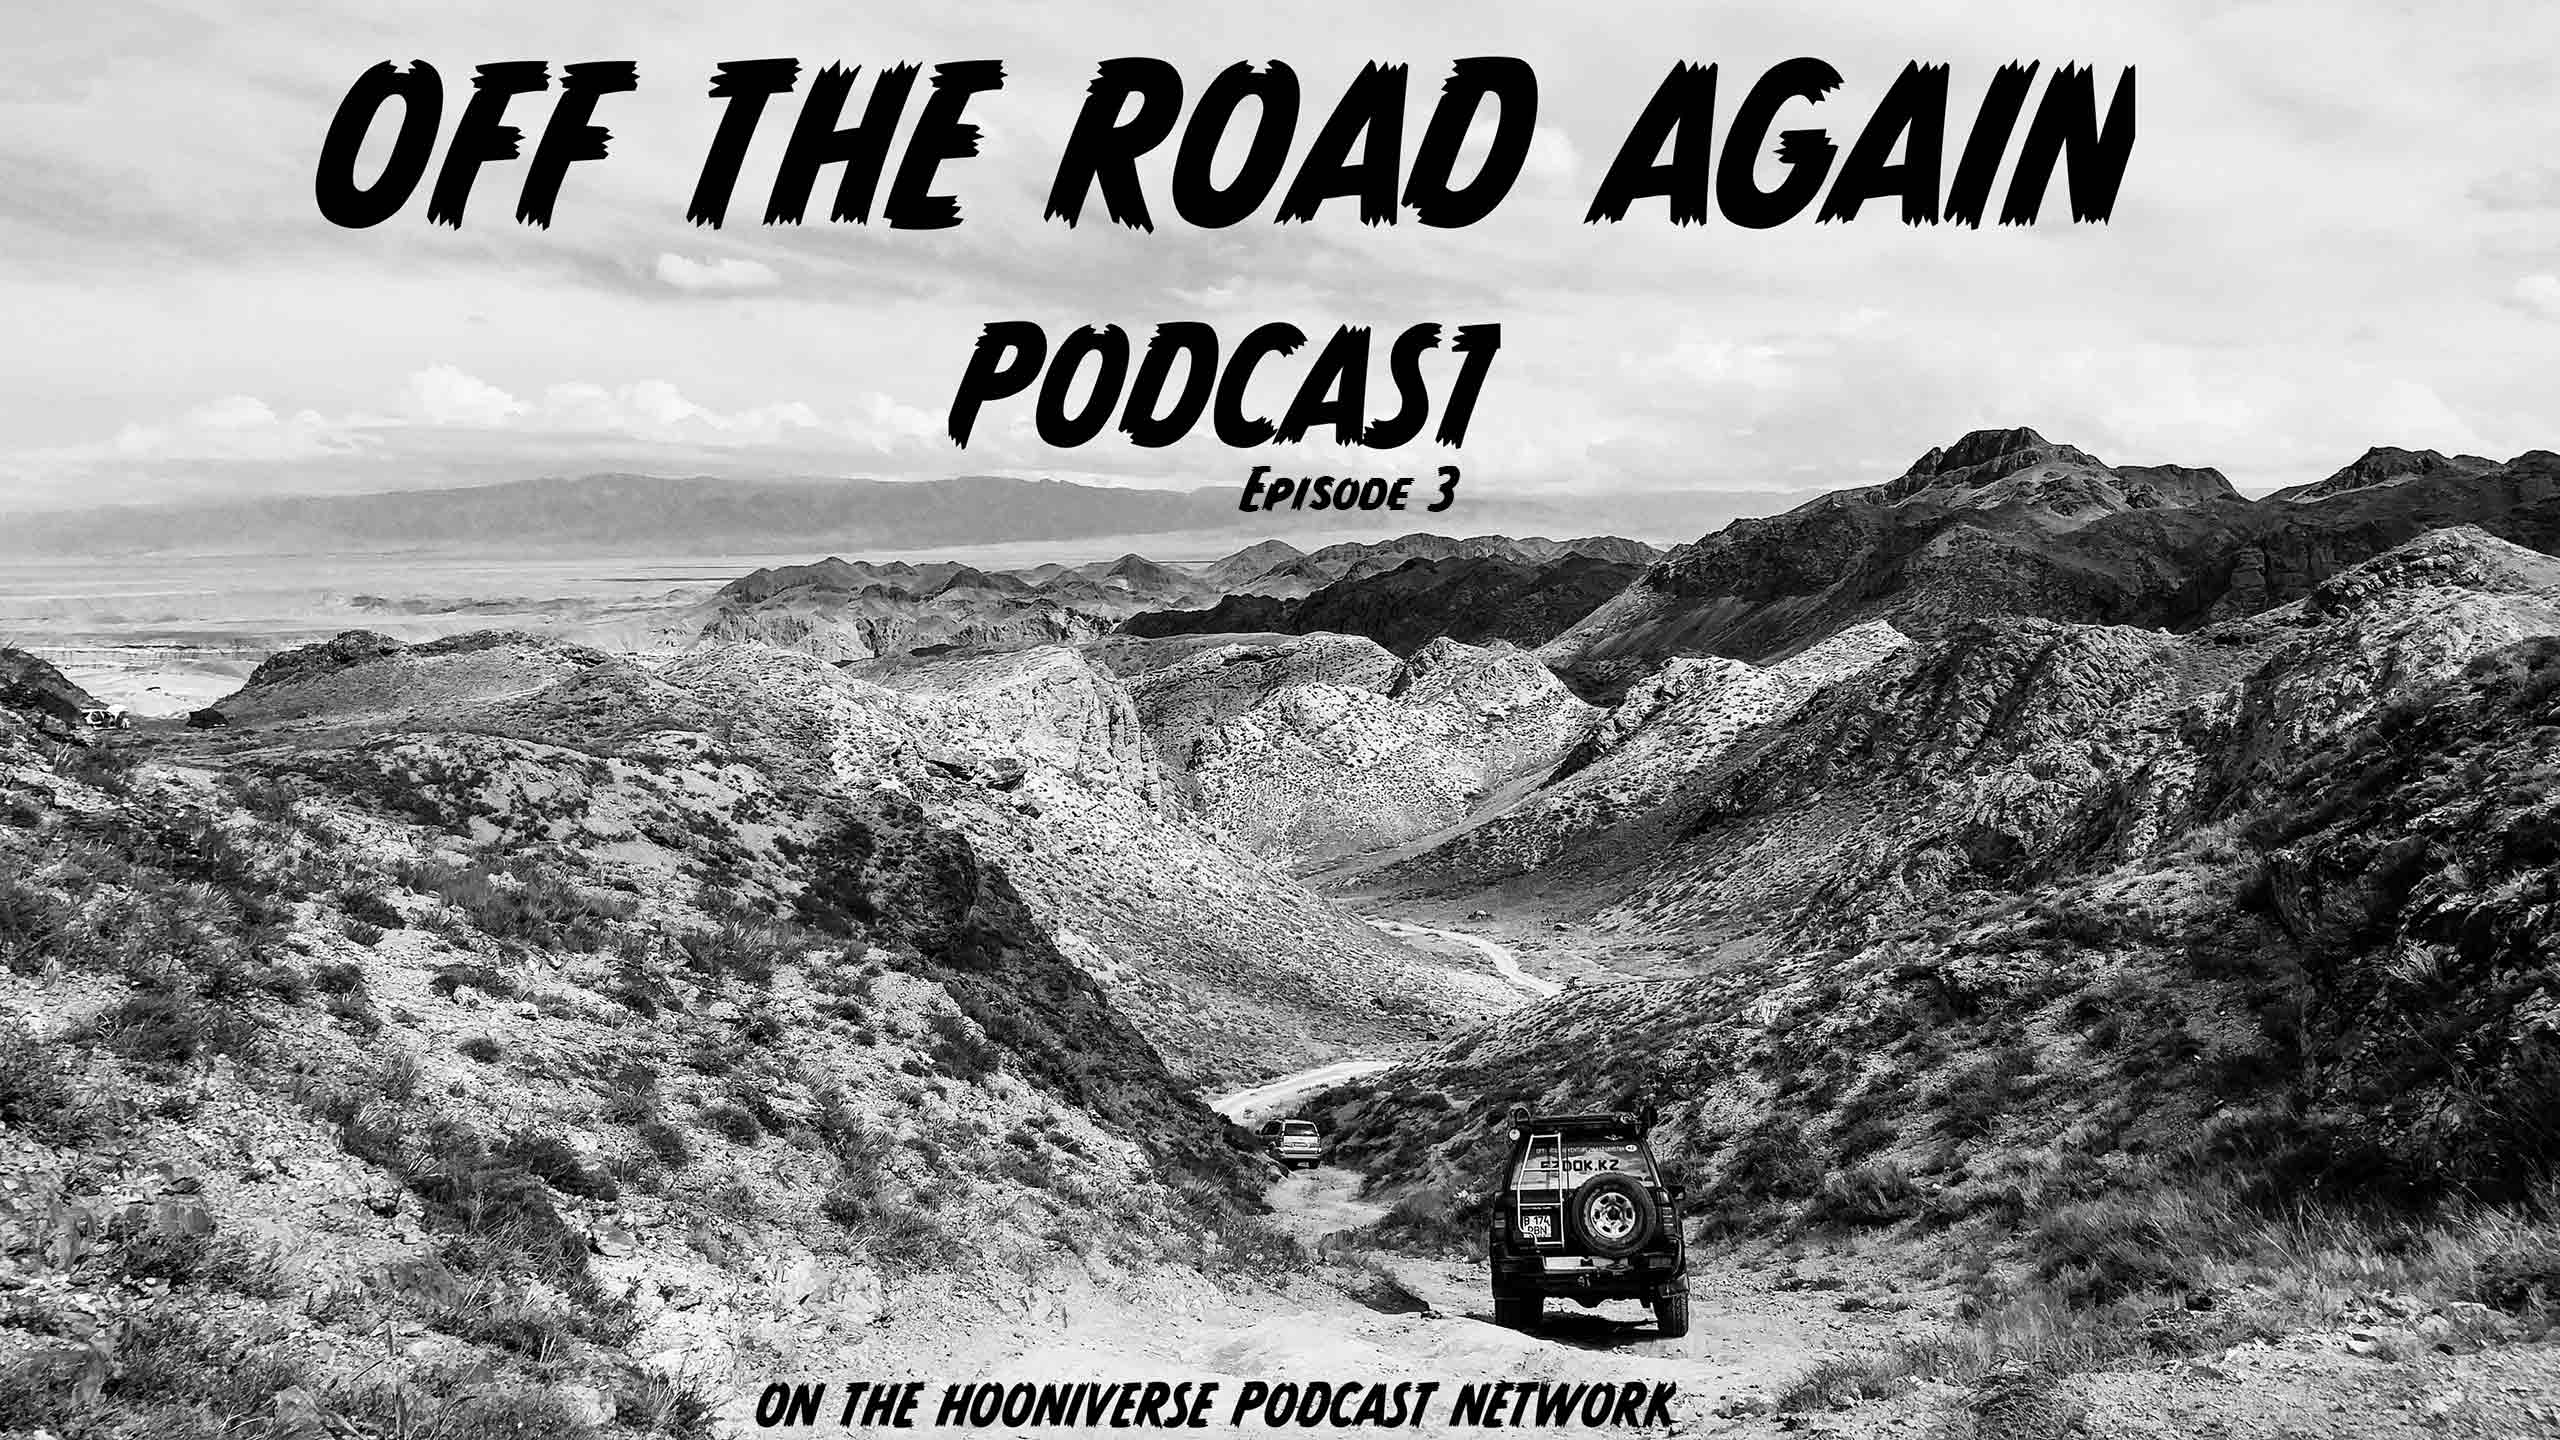 Off the Road Again Podcast: Episode 3 - The Mexican Blanket Tip